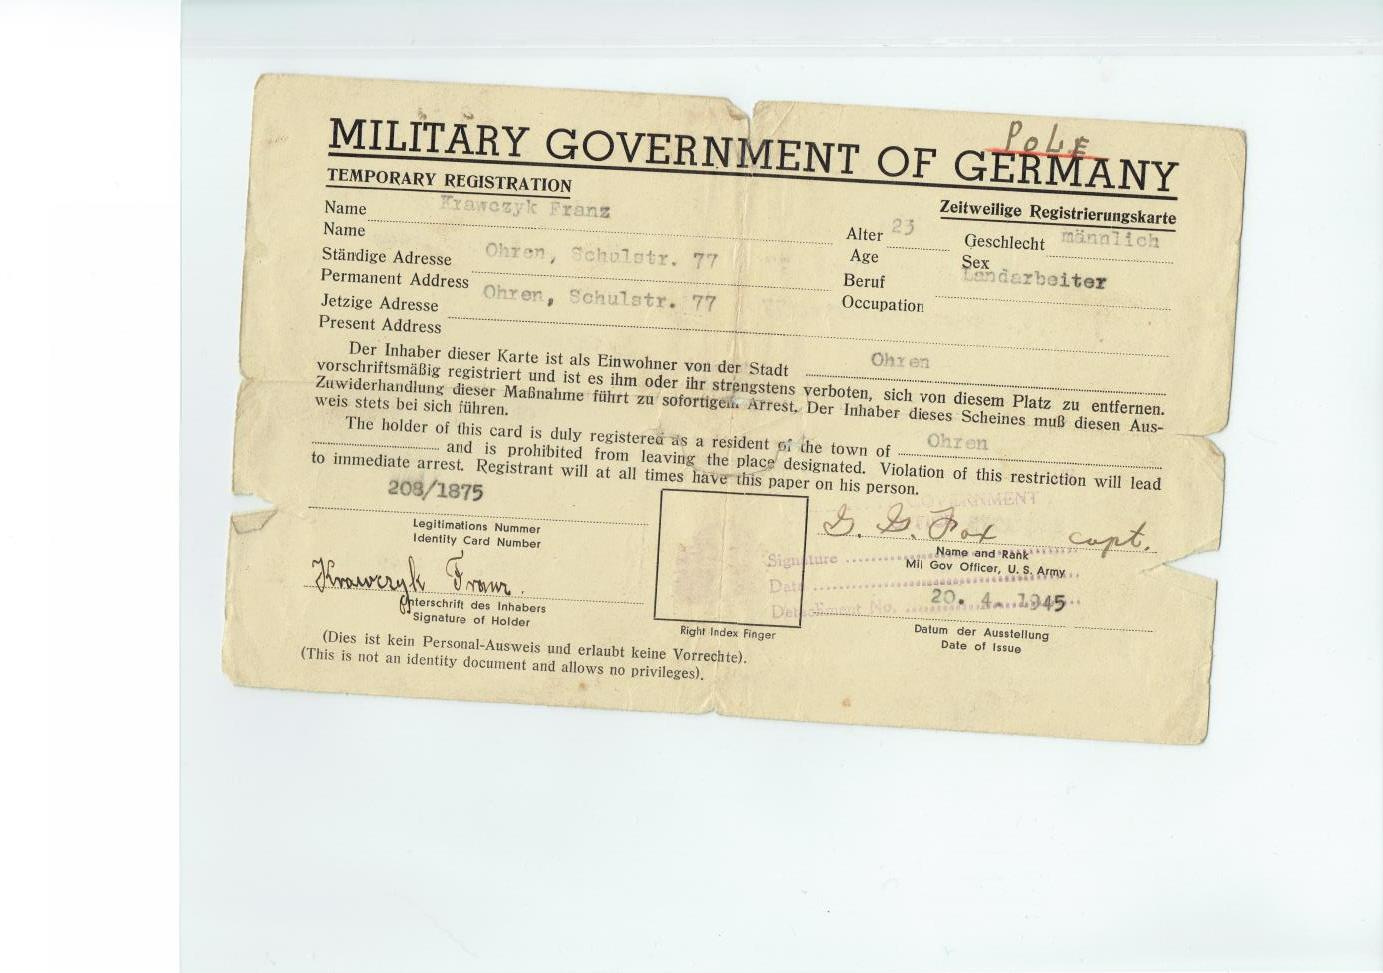 Military Gov't of Germany Temporary Registration side one